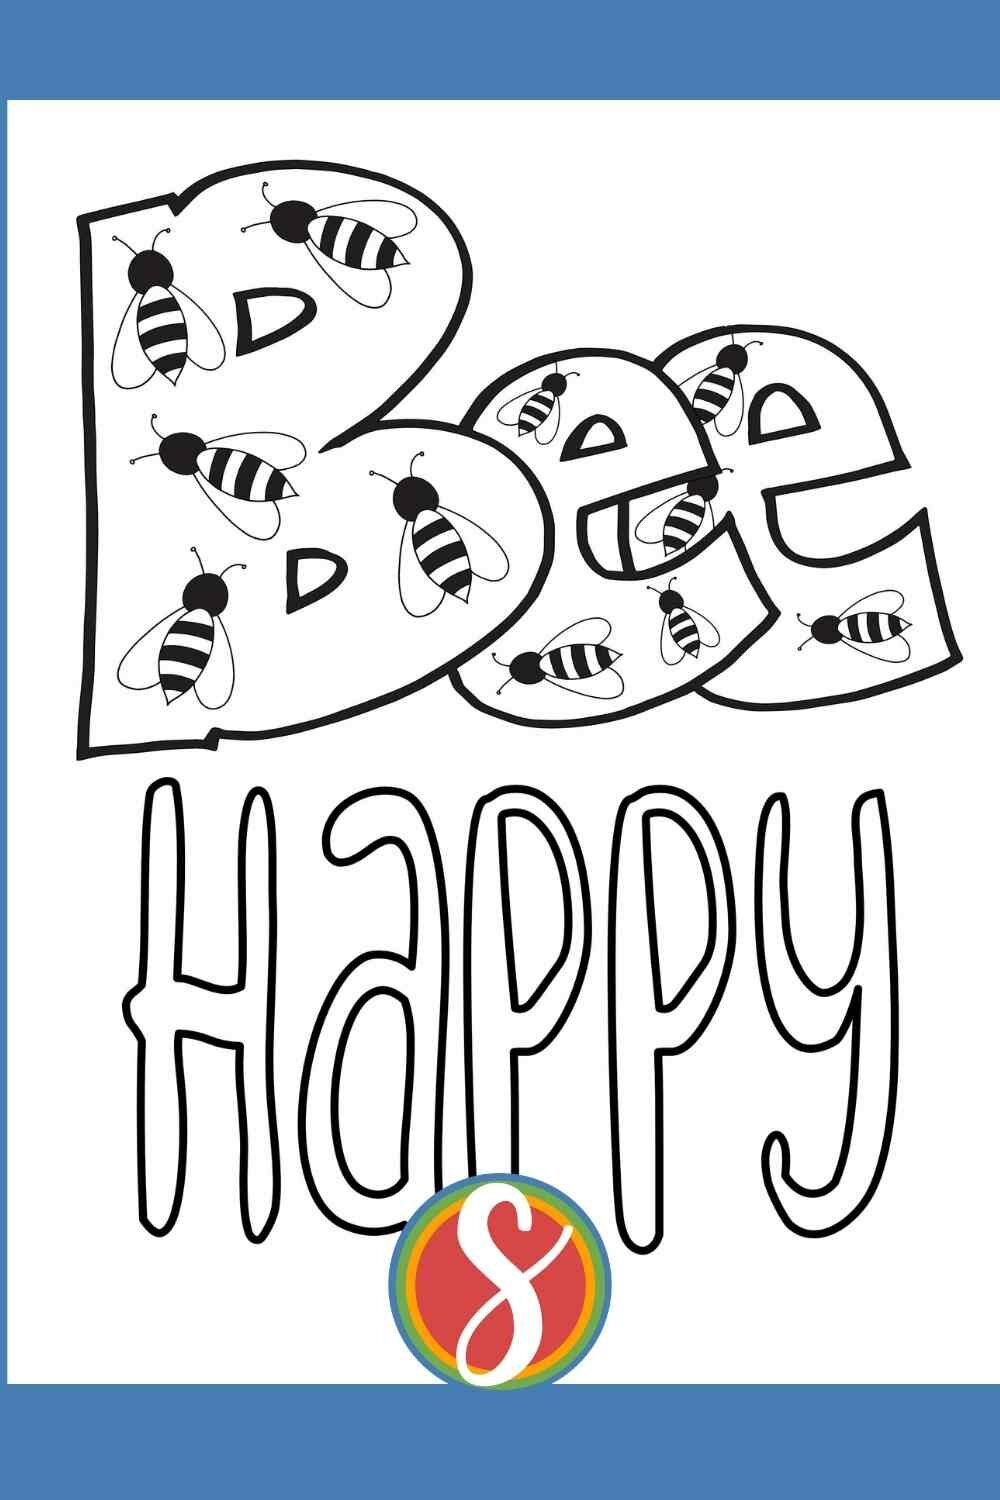 """Free bee coloring page - """"Bee Happy"""" - this page has the word """"BEE"""" with little colorable bees inside the letters. I hope you love this free bee page from Stevie Doodles - find this and tons more other coloring sheets about bees from Stevie"""